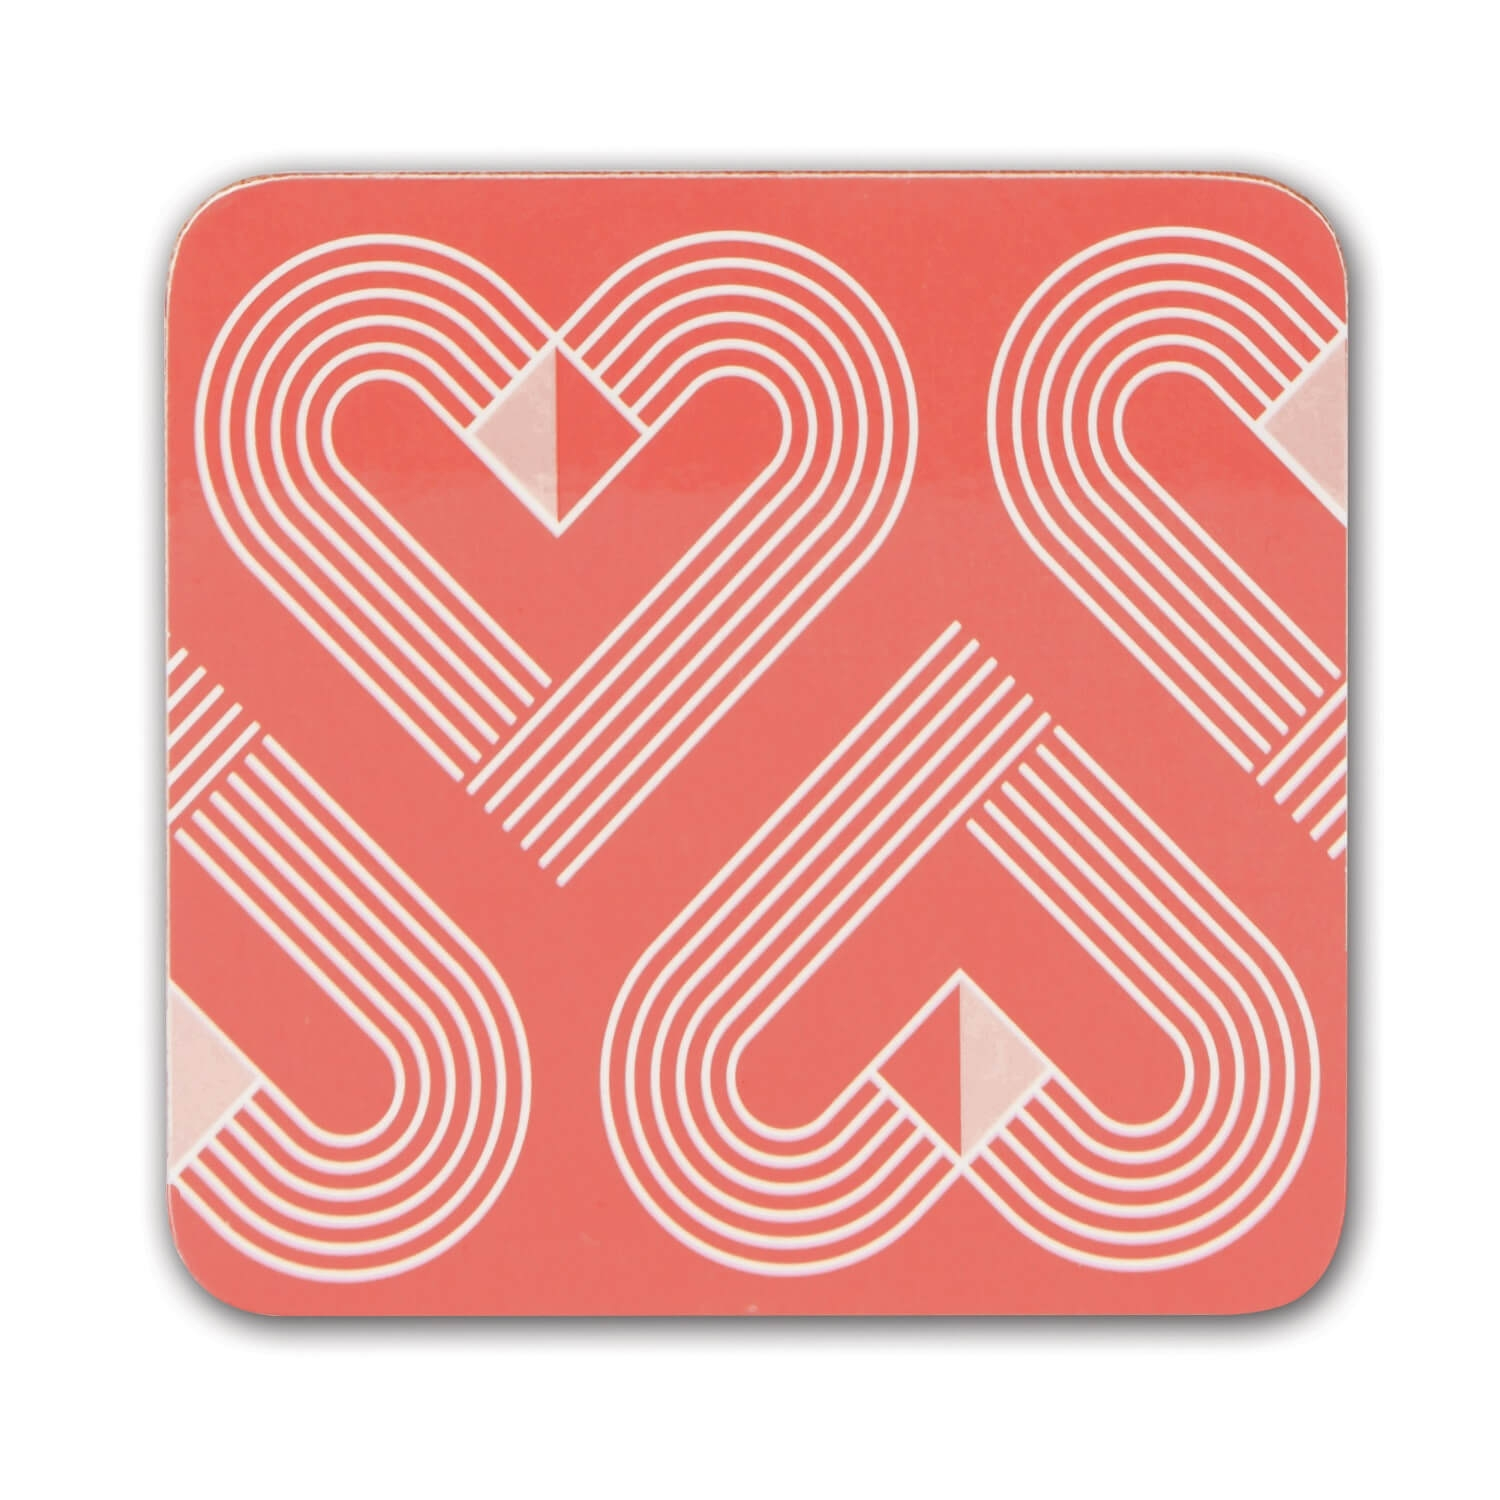 Image of Vibe Coasters, Coral